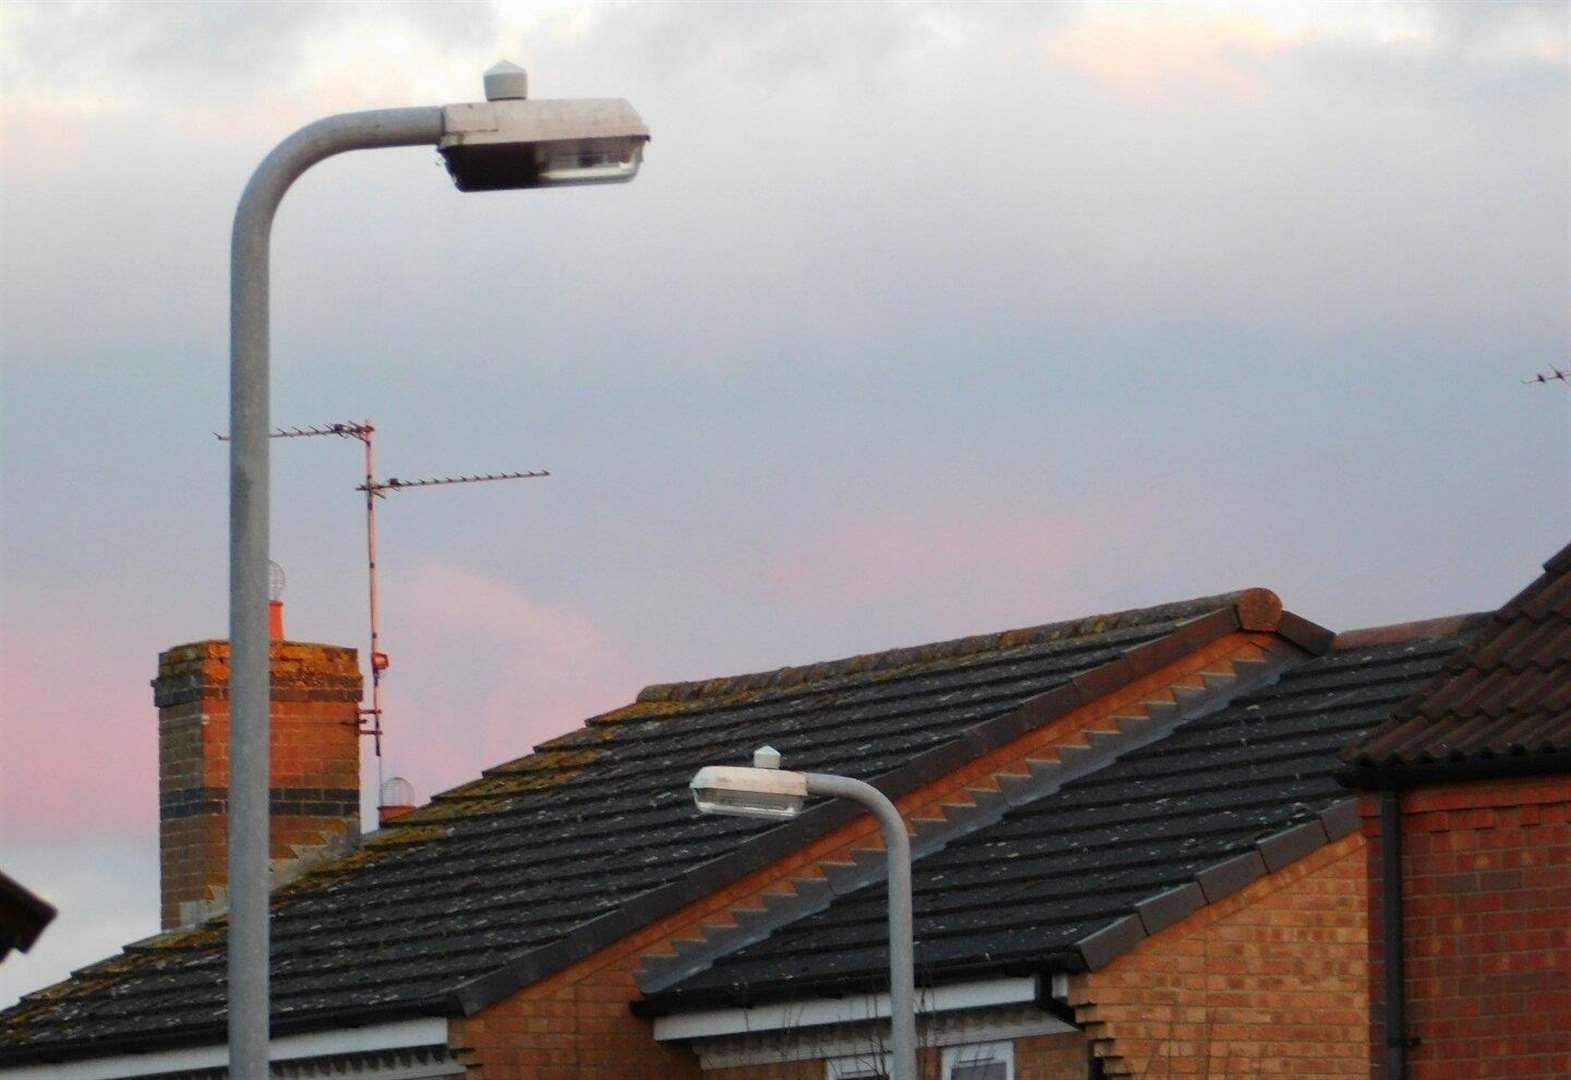 Street lights can be turned back on at night - but it could cost £300 per light